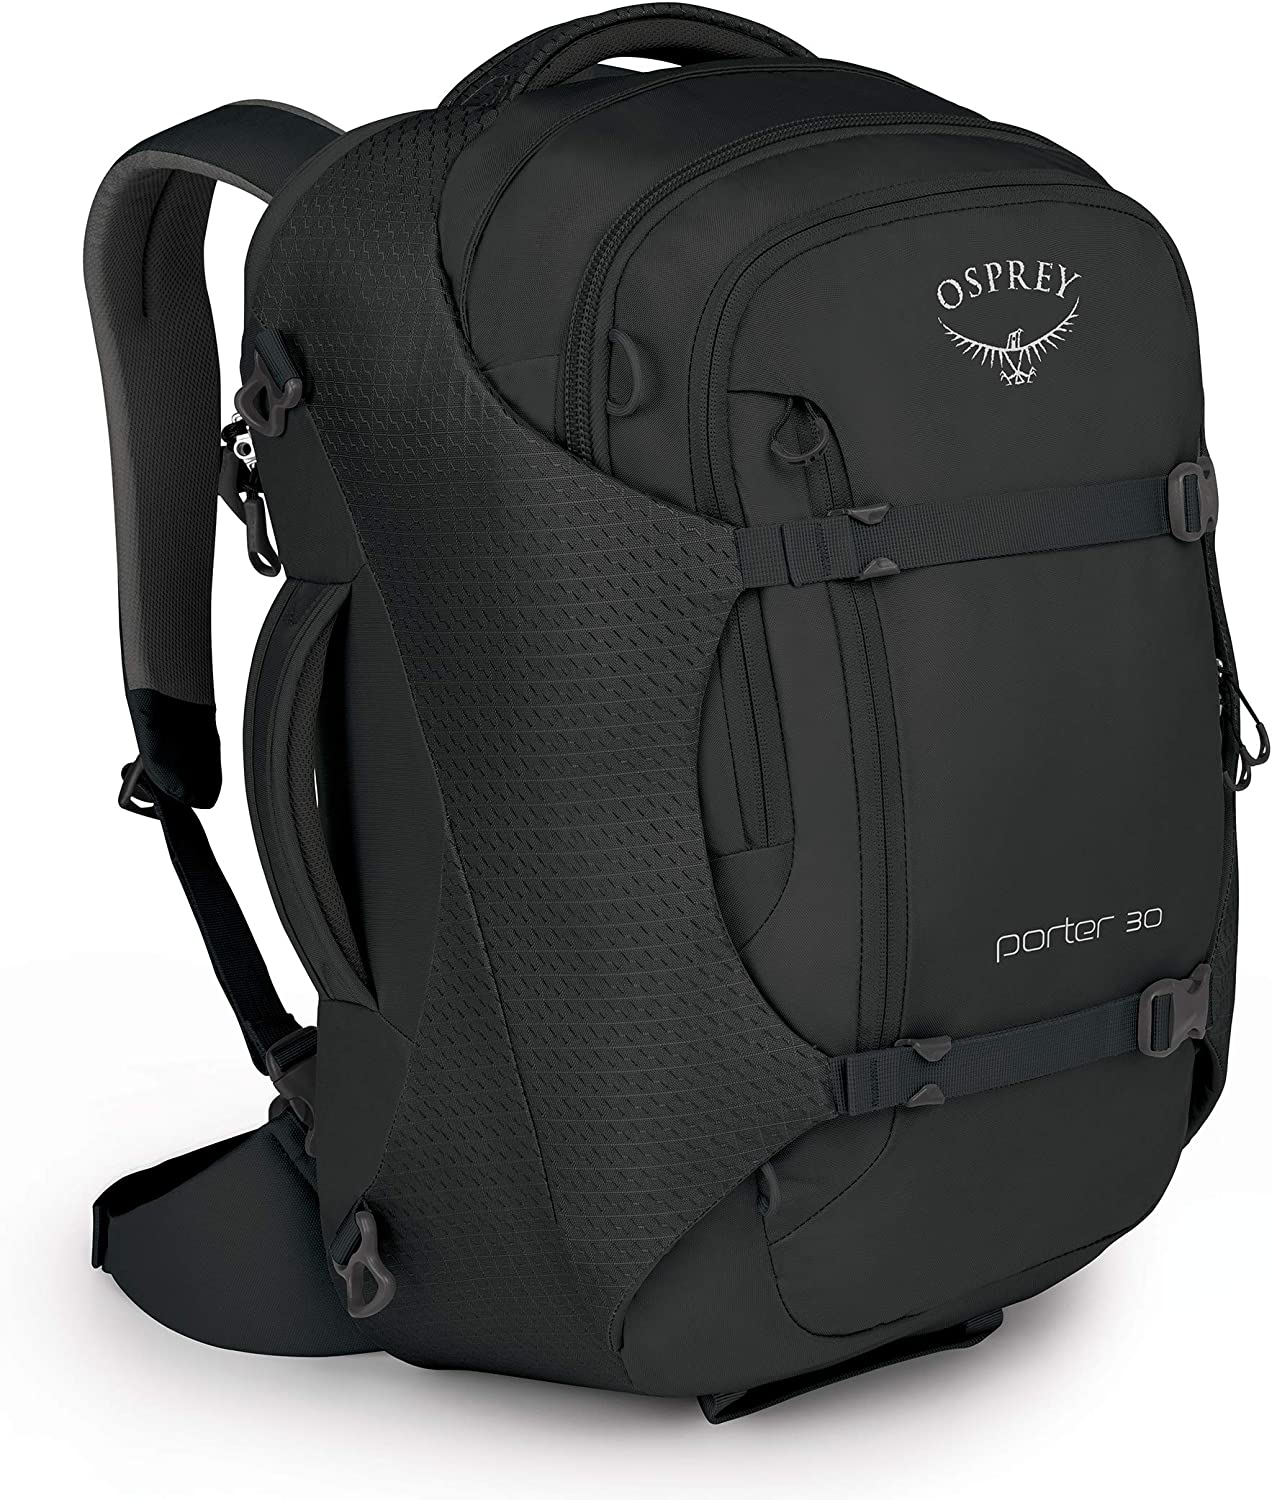 Osprey Porter 30 Travel Backpack: Sports & Outdoors